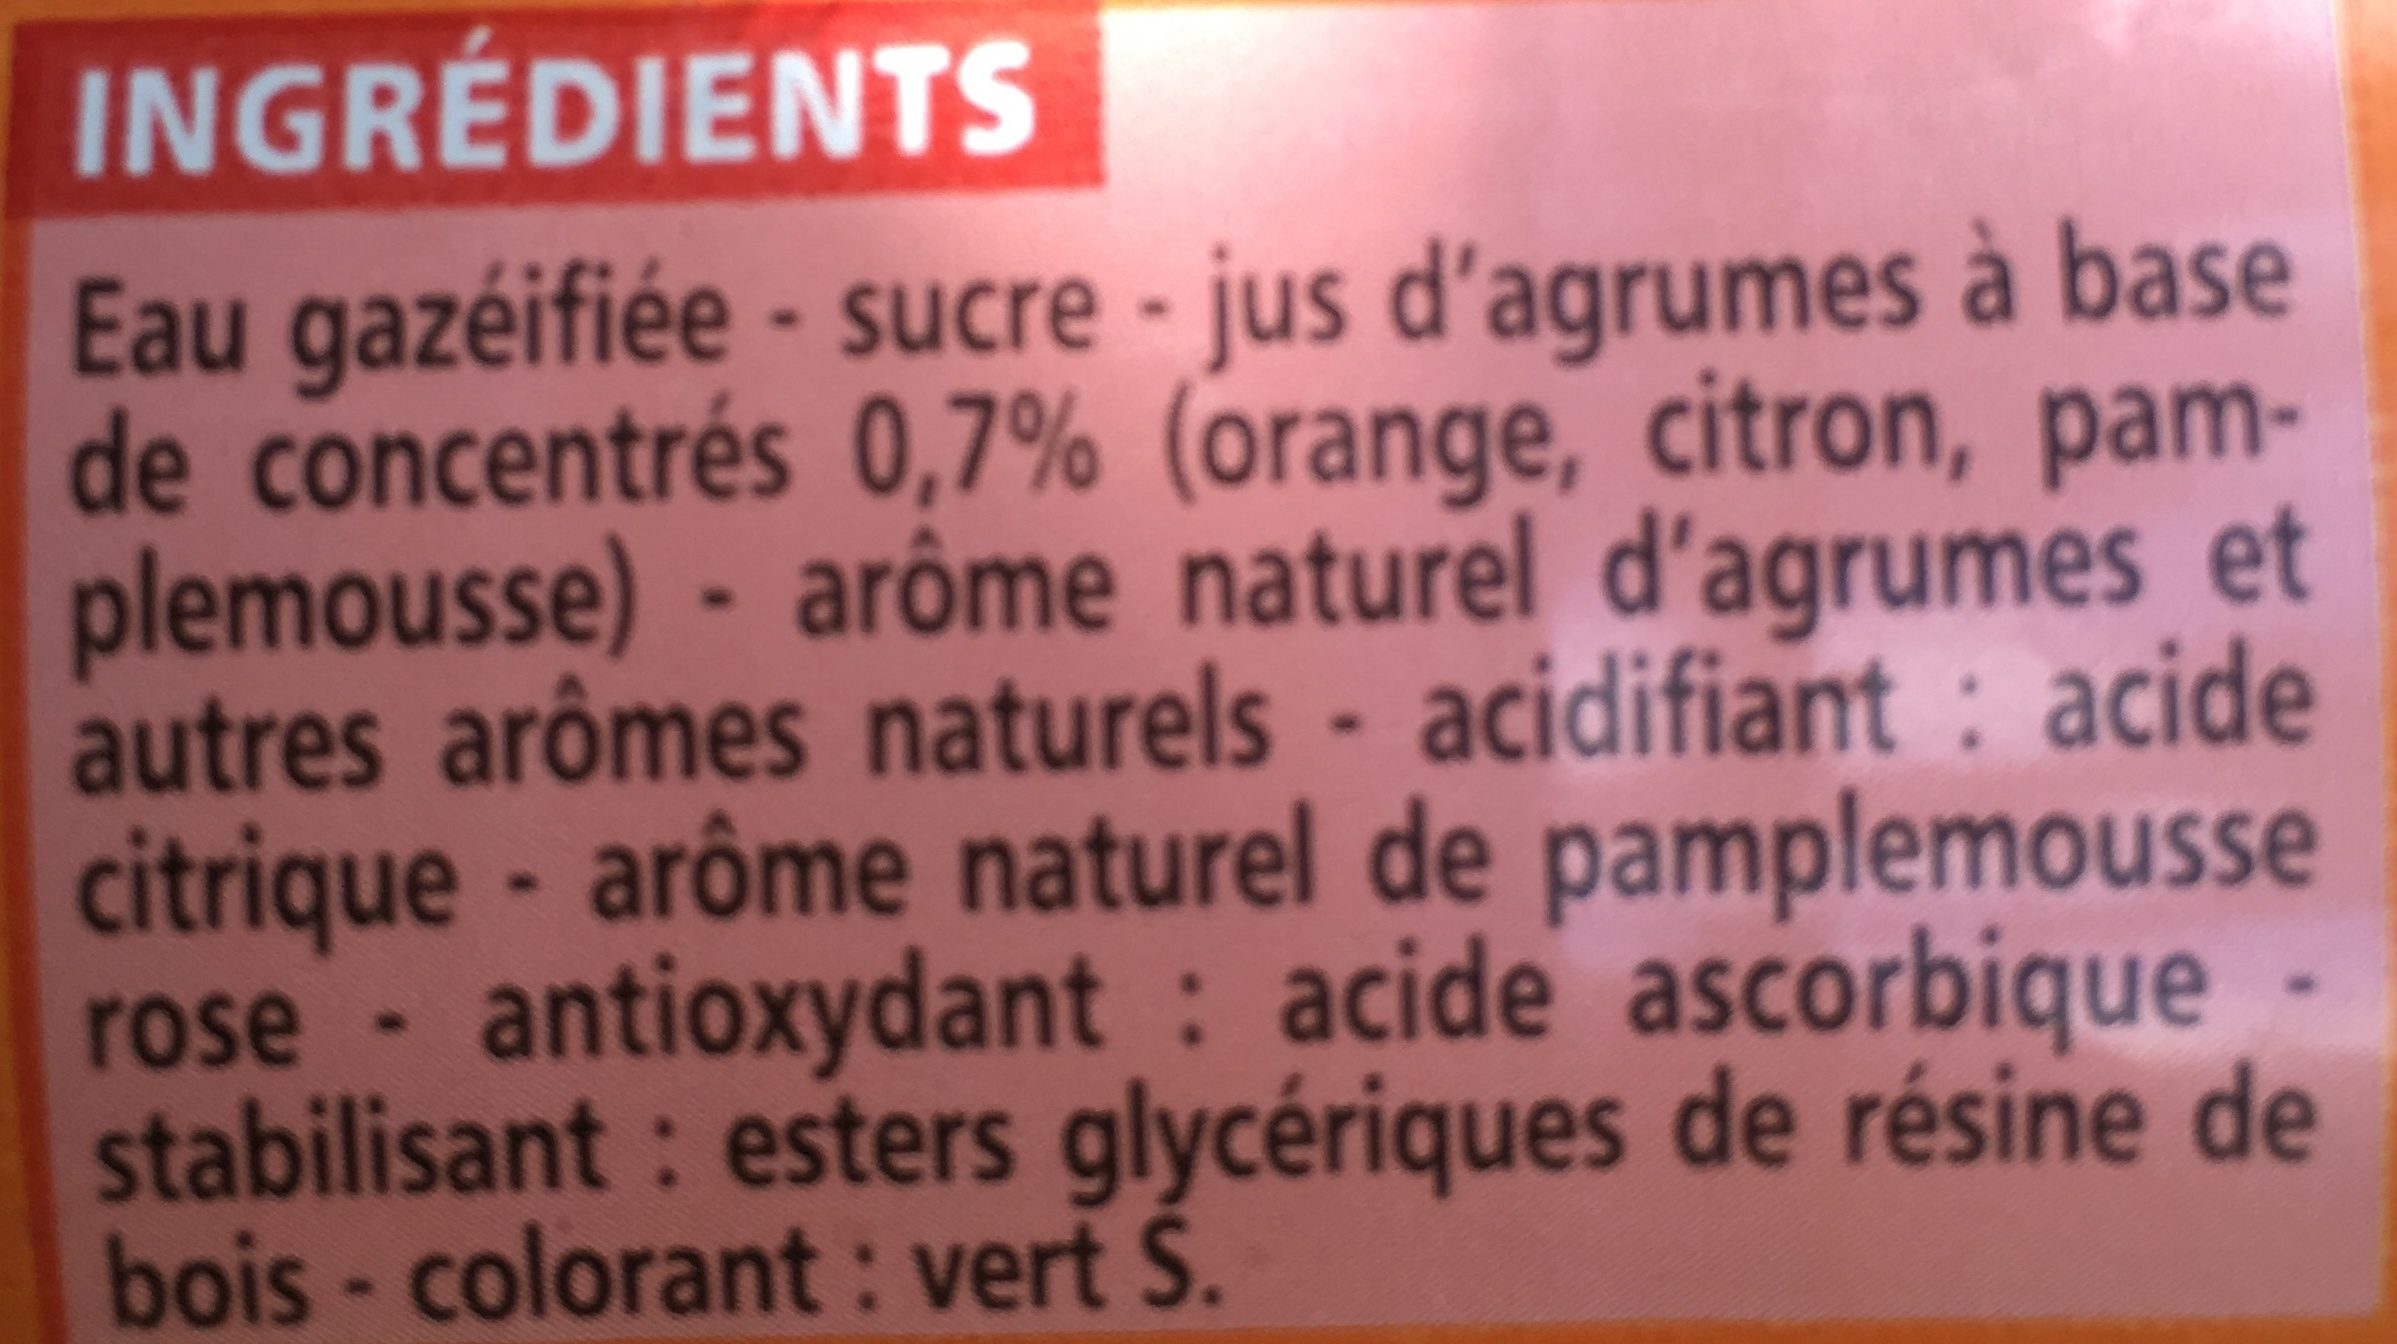 Agrumes - saveur orange, citron et pamplemousse - Ingrediënten